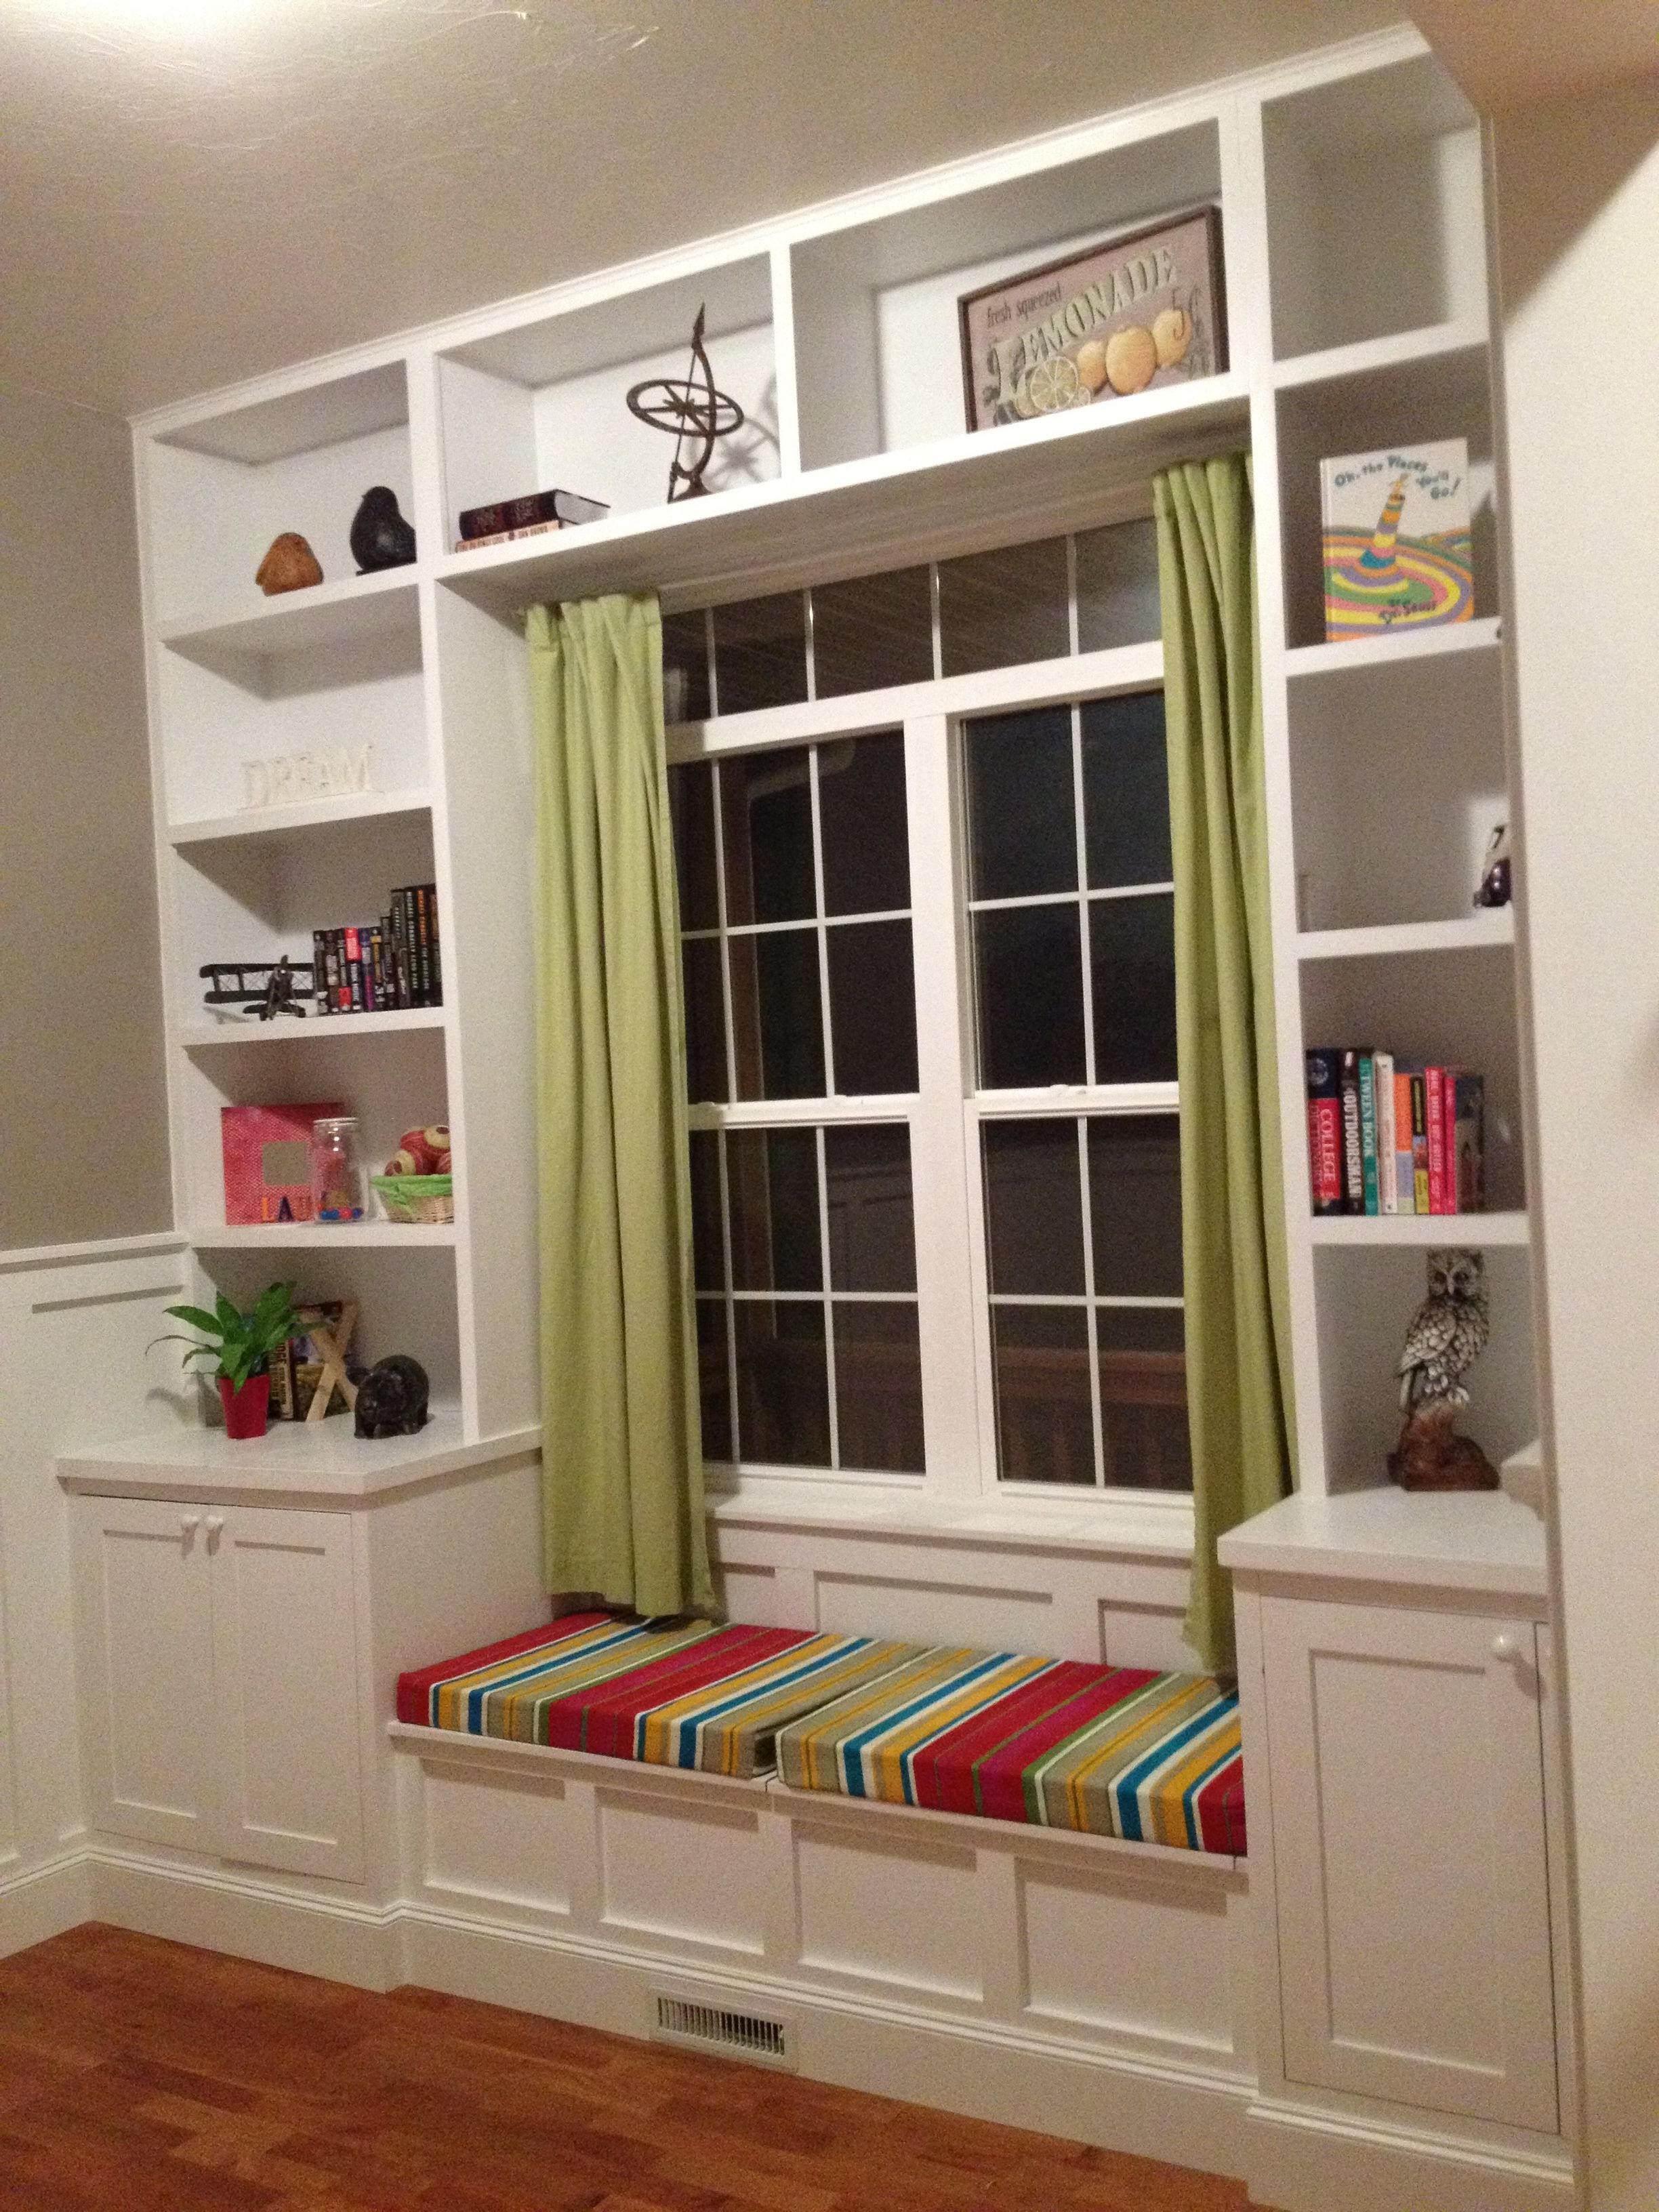 Built Bookshelves Around The Window Seat For Daydreaming Had These Custom